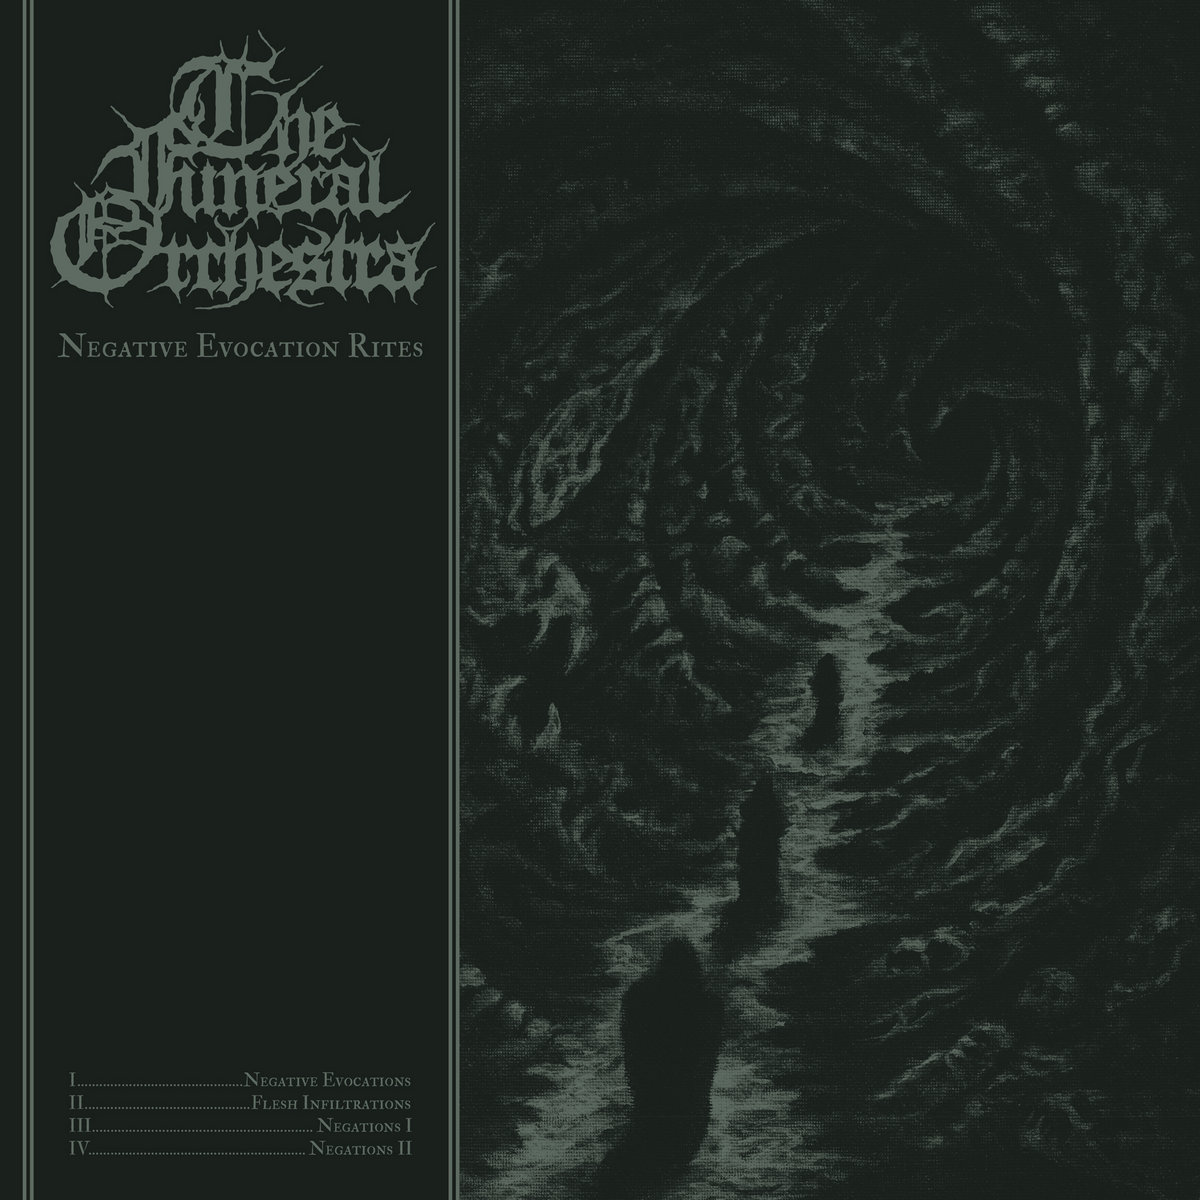 the funeral orchestra negative evocaation rites cover art